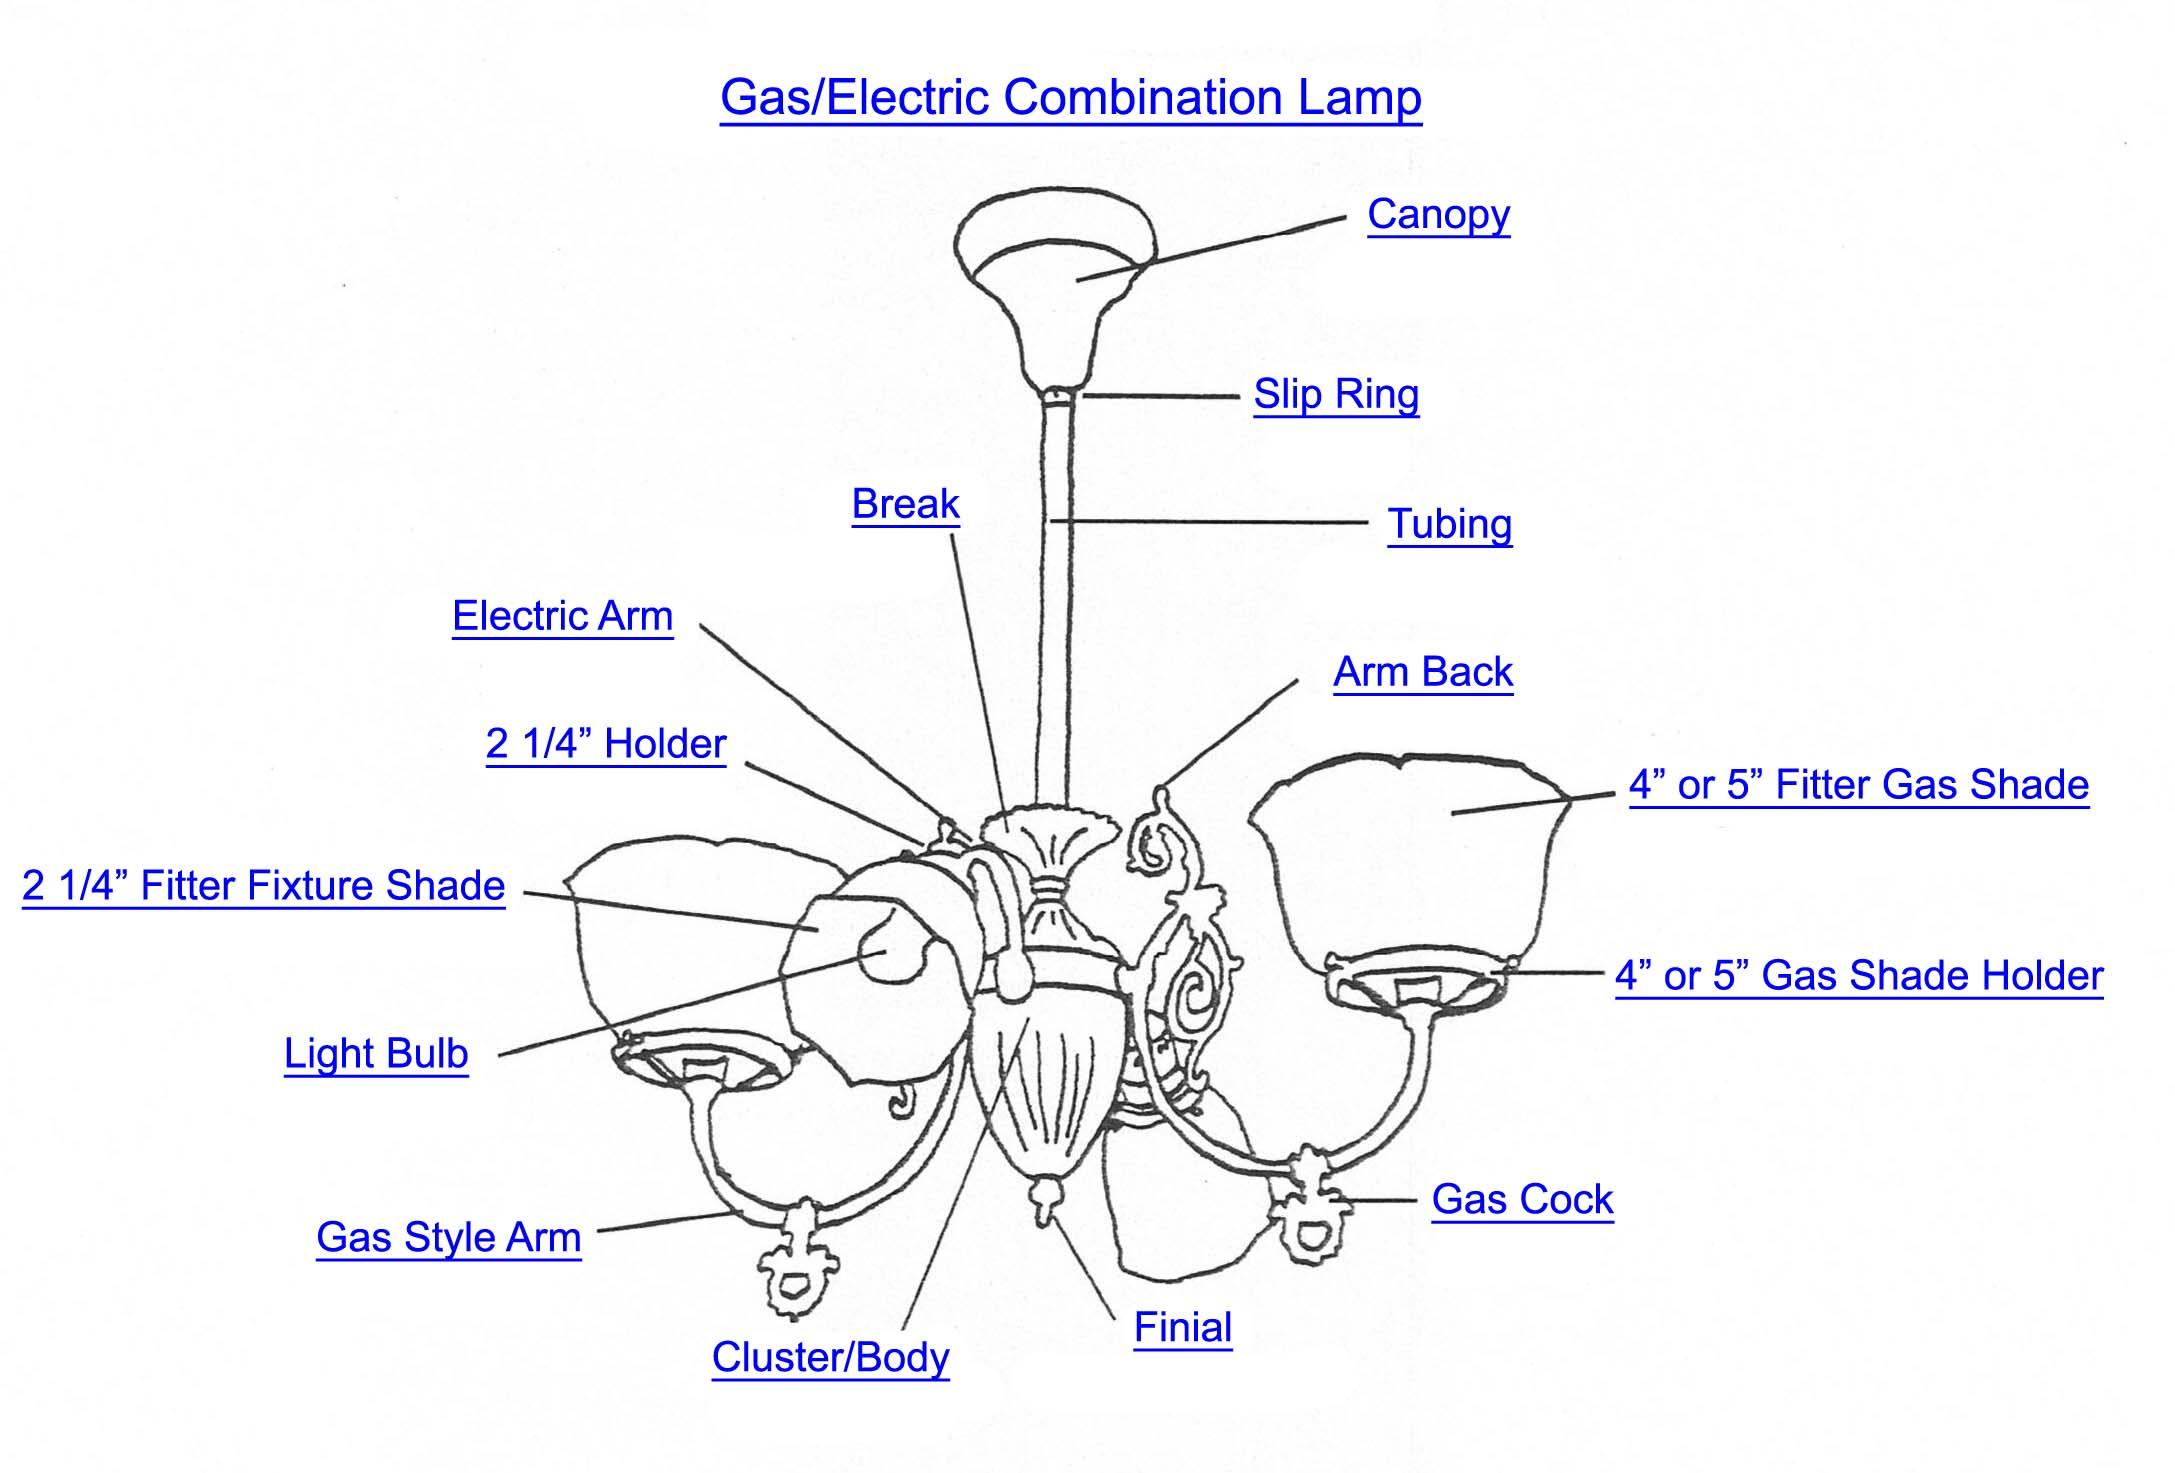 Gas Electric Combination Lamp Part Index